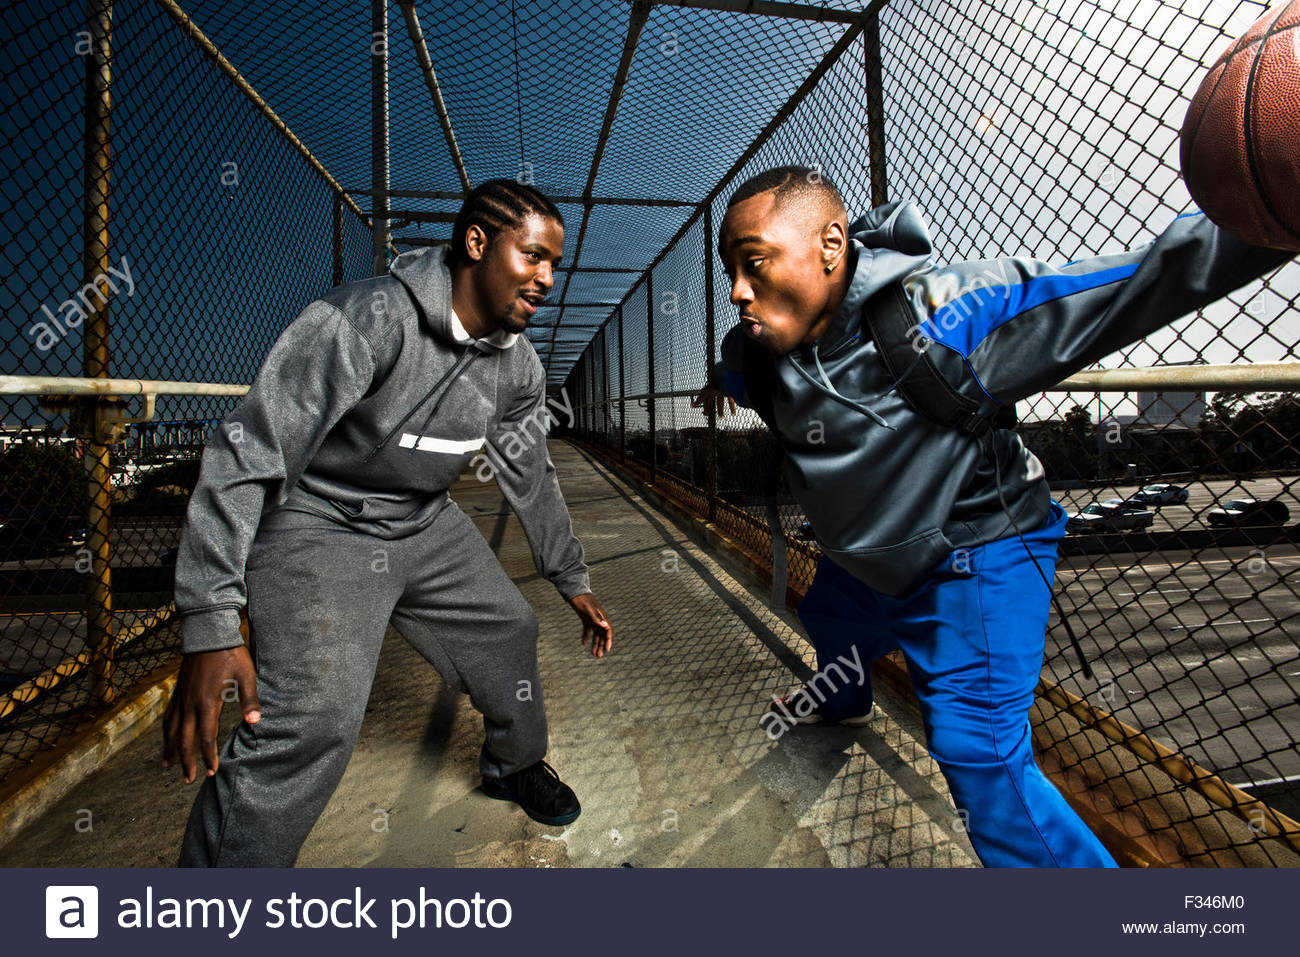 Two young guys walking down a foot bridge playing around with a basketball. - Stock Image